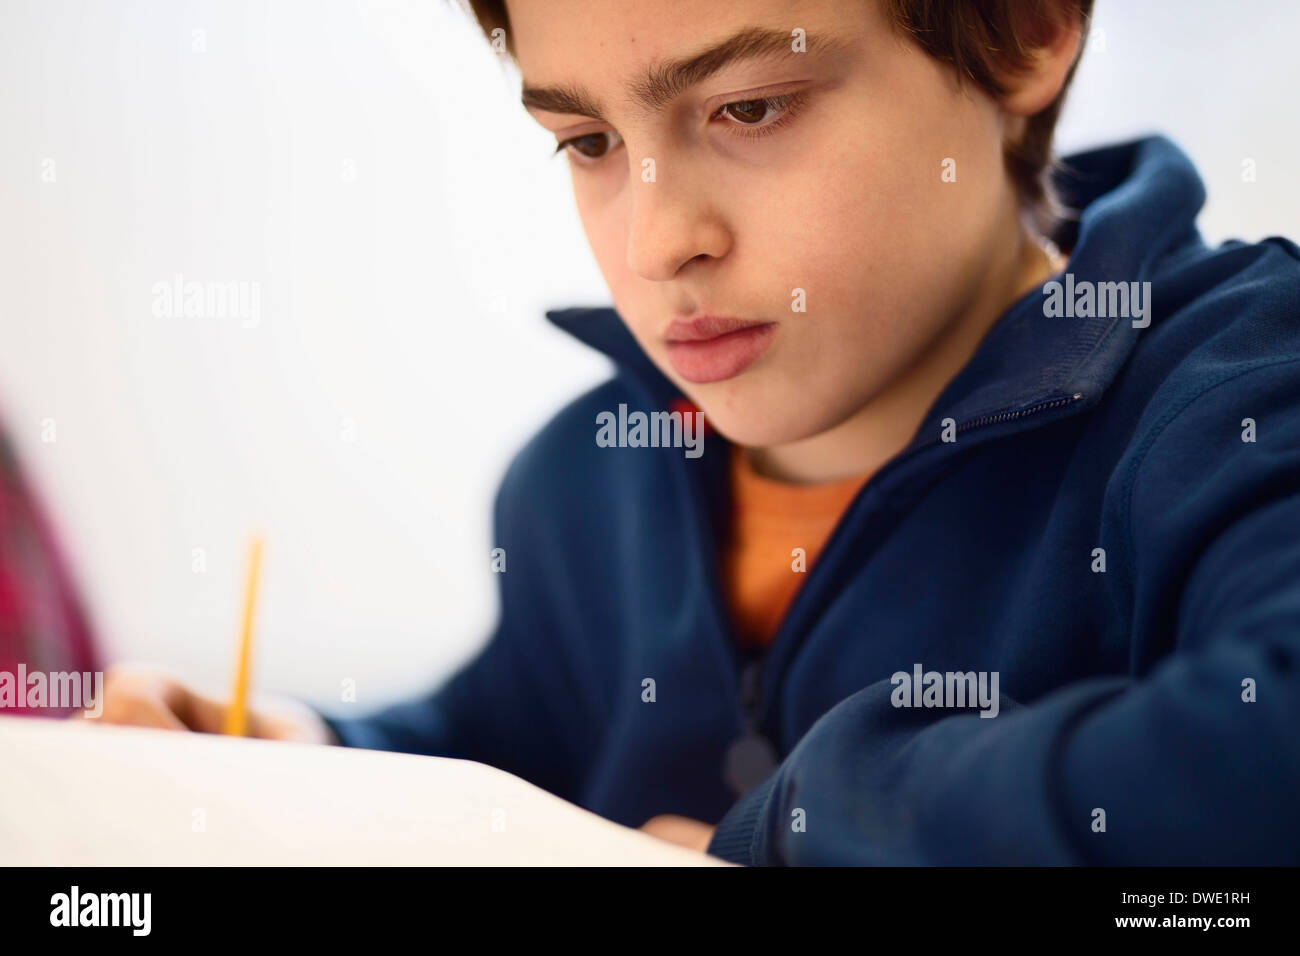 Concentrated schoolboy studying - Stock Image